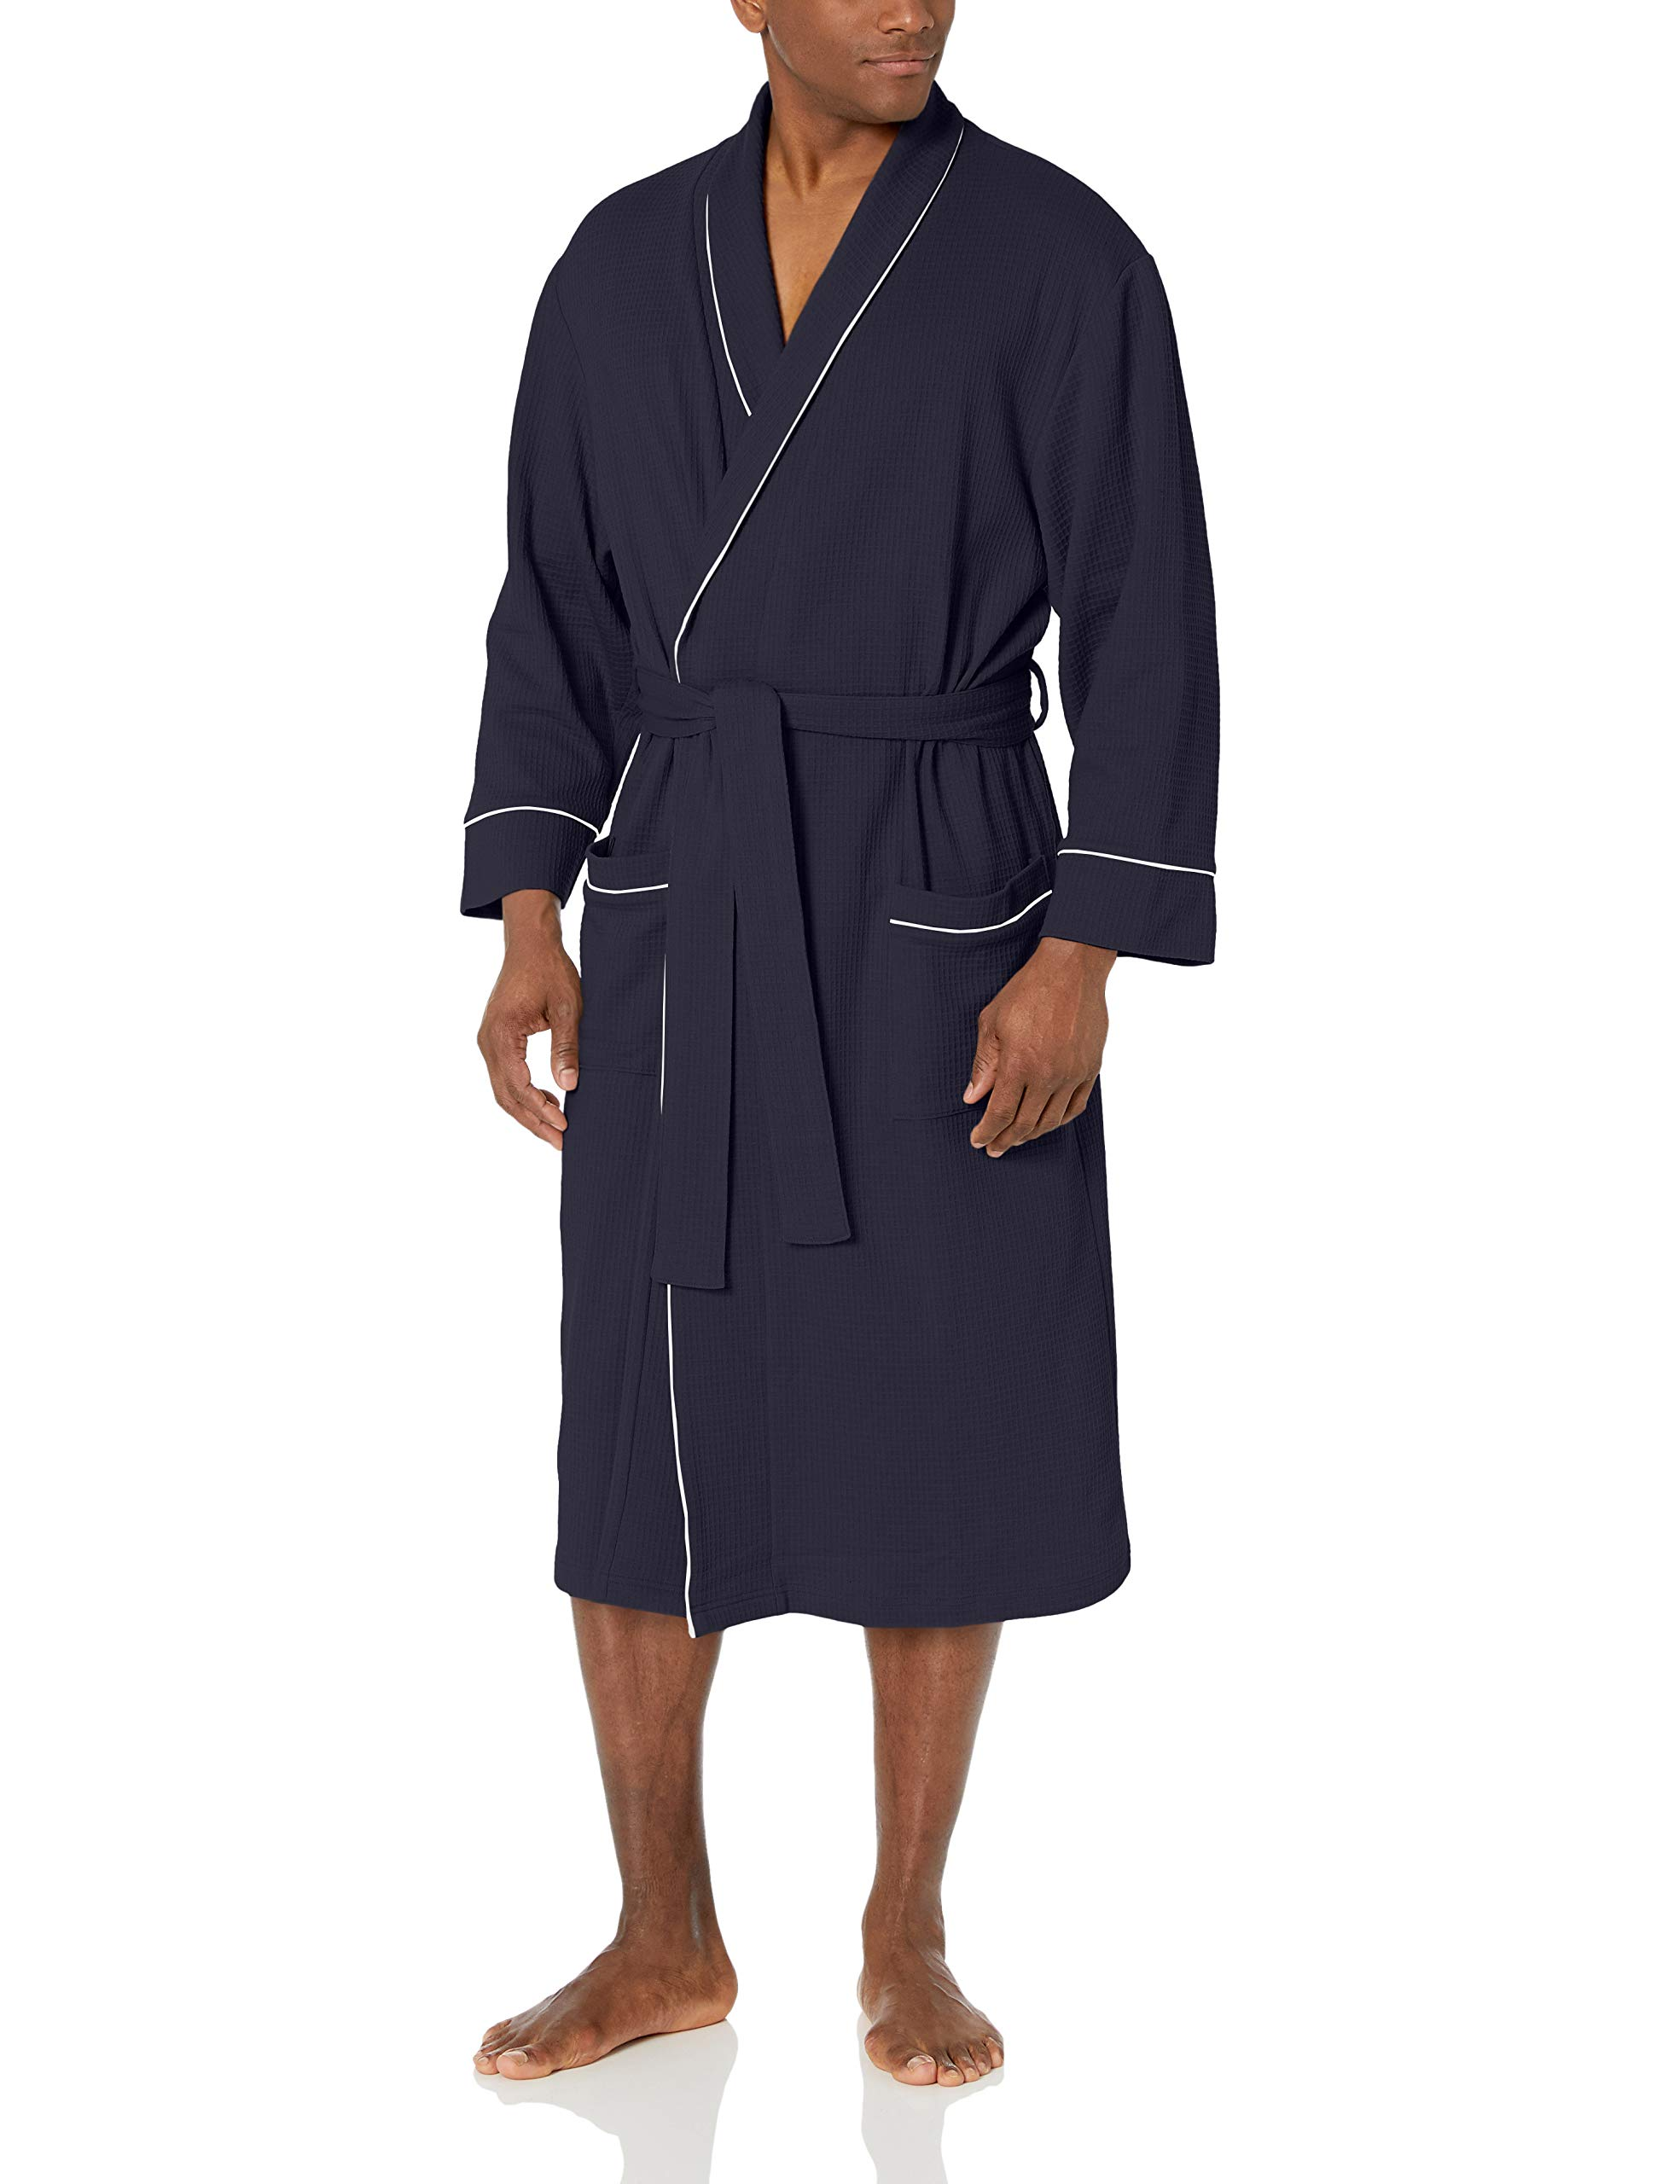 Image of Comfy Navy Blue Waffle Robe for Men - See More Colors